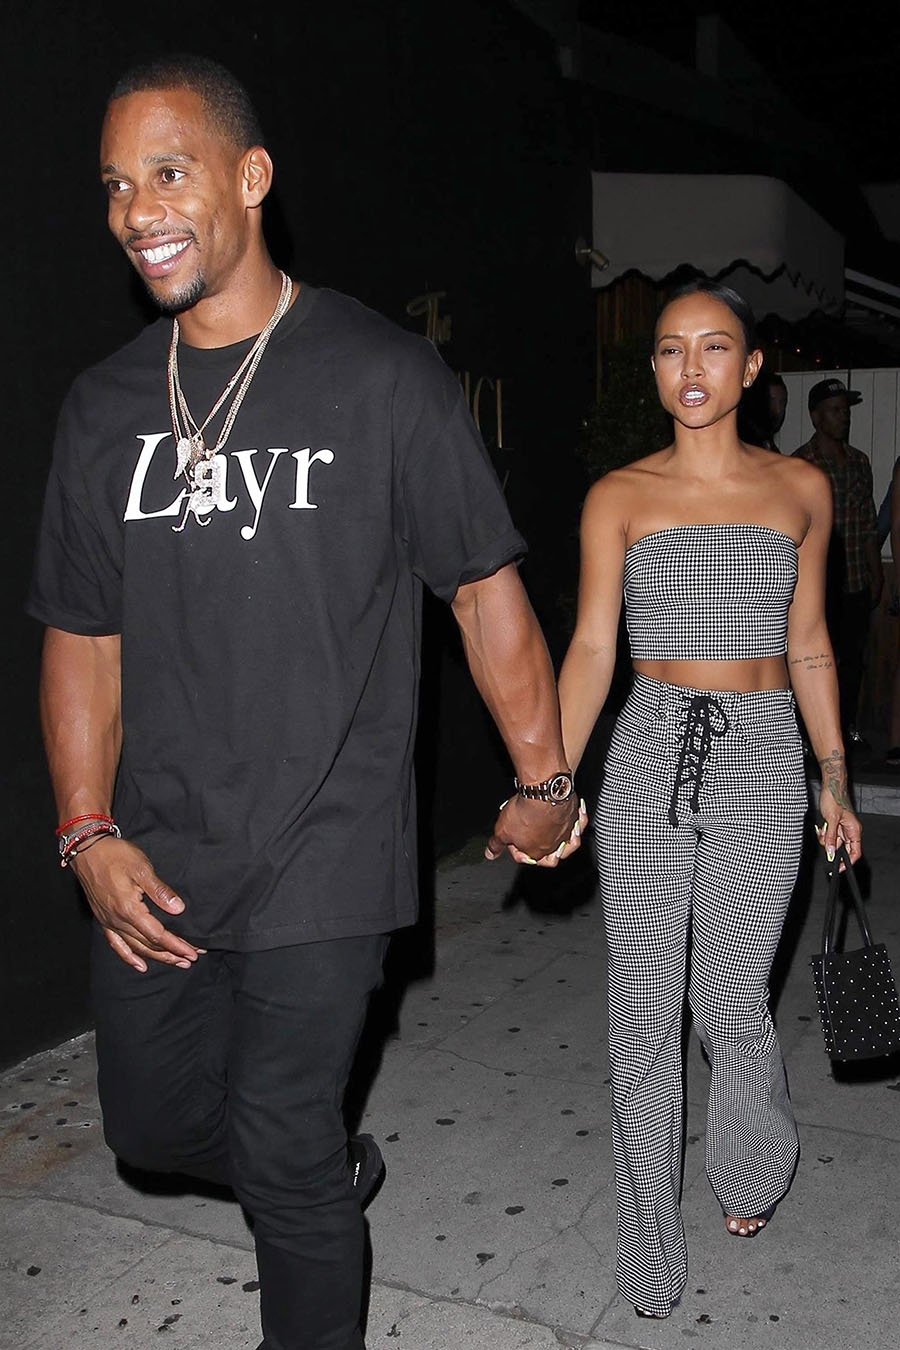 karrueche tran and victor cruz hold hands as they leave